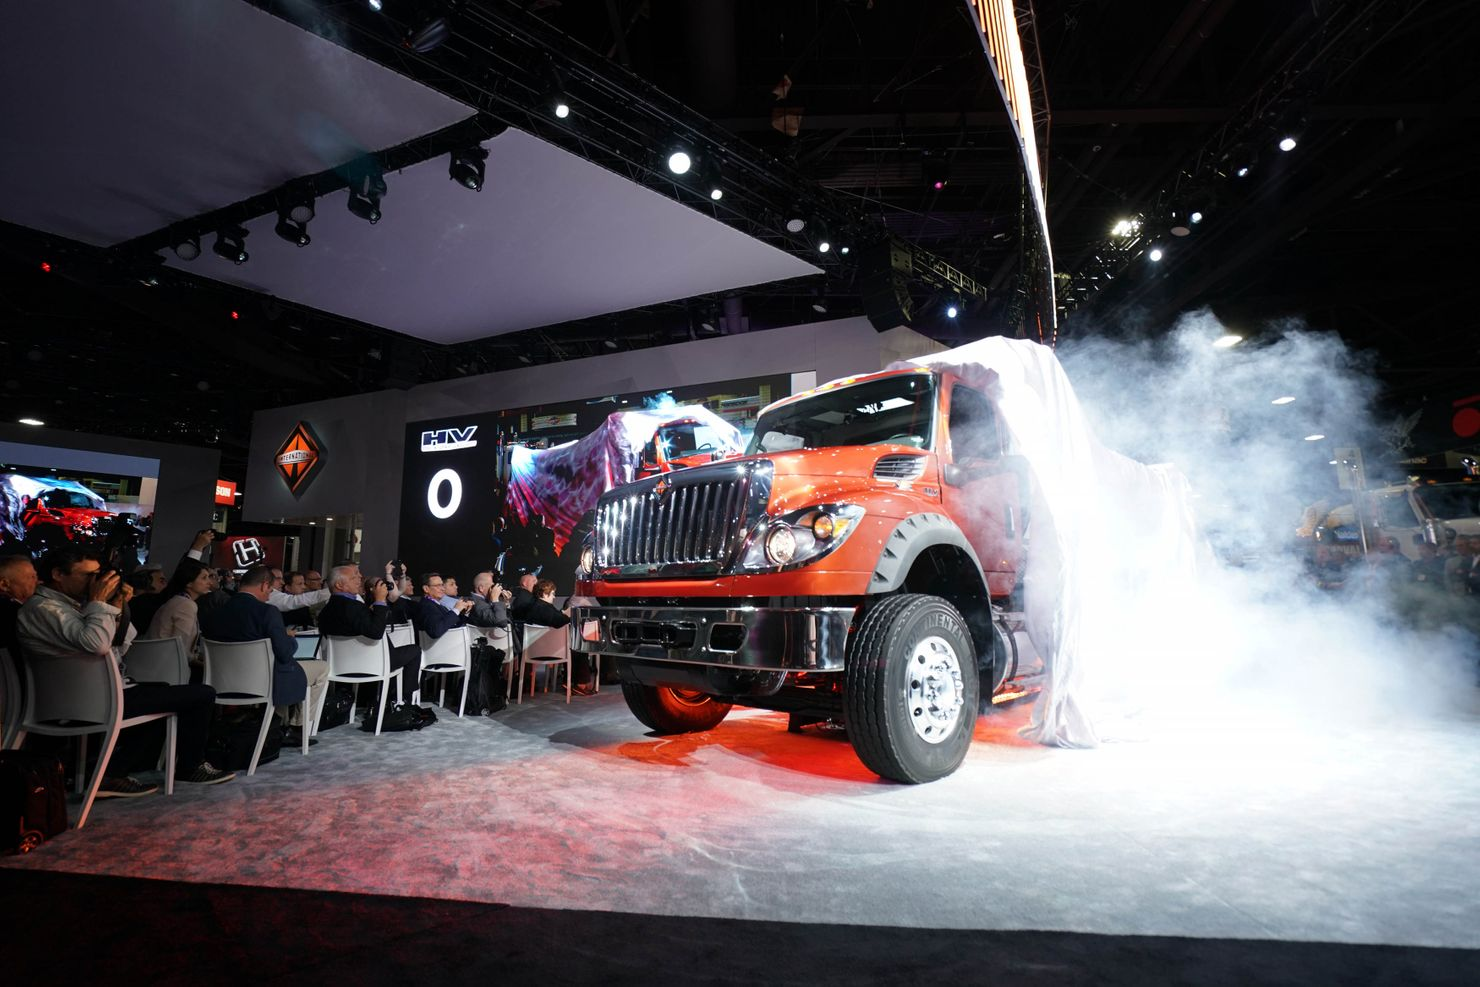 Image 5 for International Trucks Takes on the North American Commercial Vehicle Show 2017